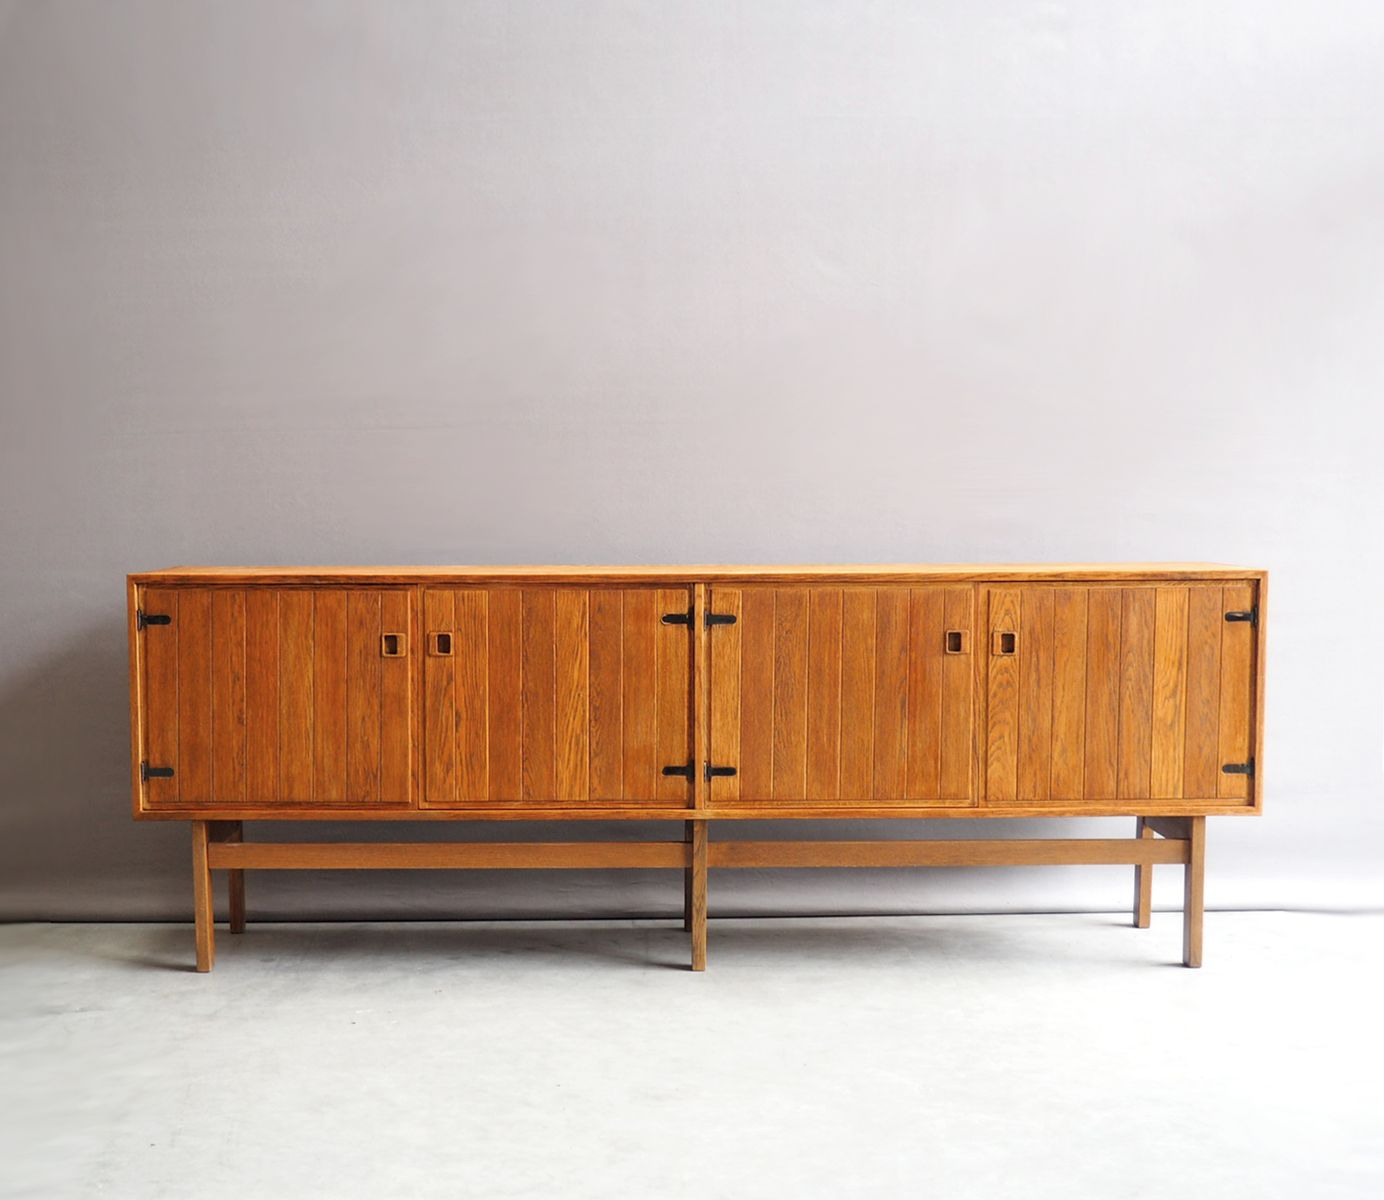 gro es d nisches eichenholz sideboard 1960er bei pamono. Black Bedroom Furniture Sets. Home Design Ideas